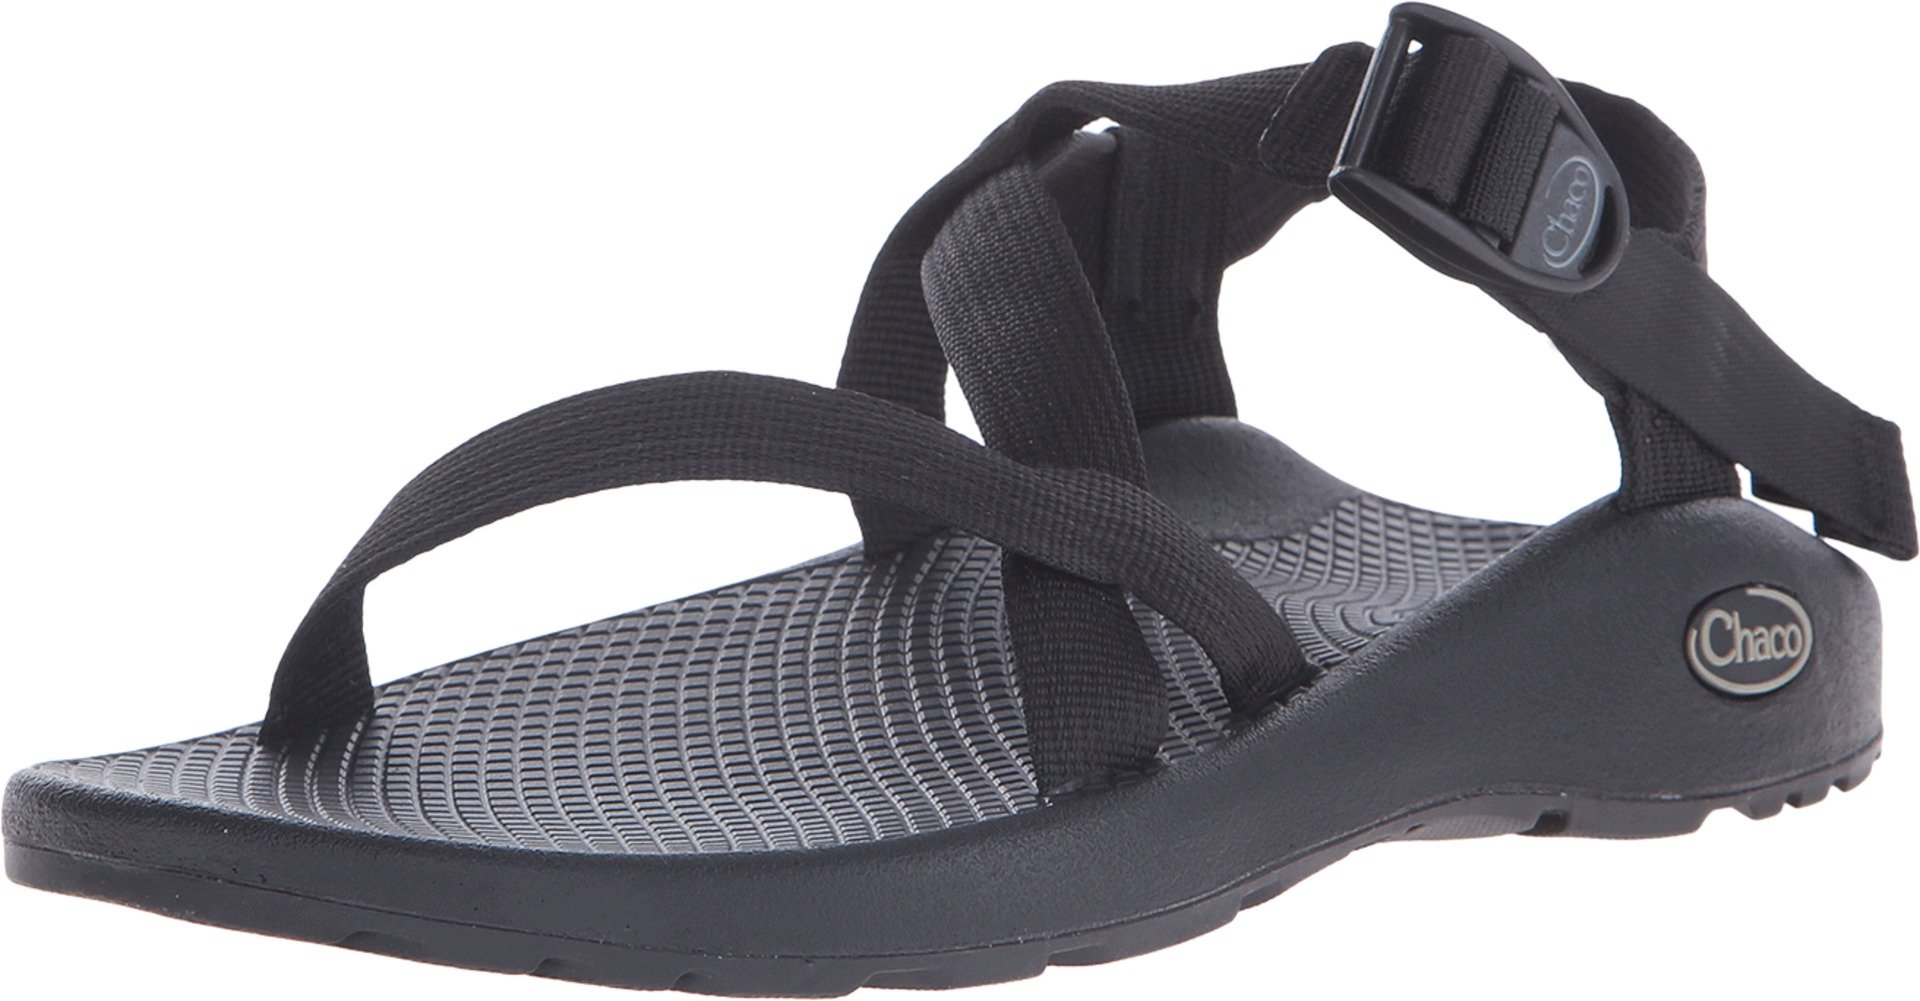 Chaco Women's Z1 Classic Athletic Sandal, Black, 8 M US